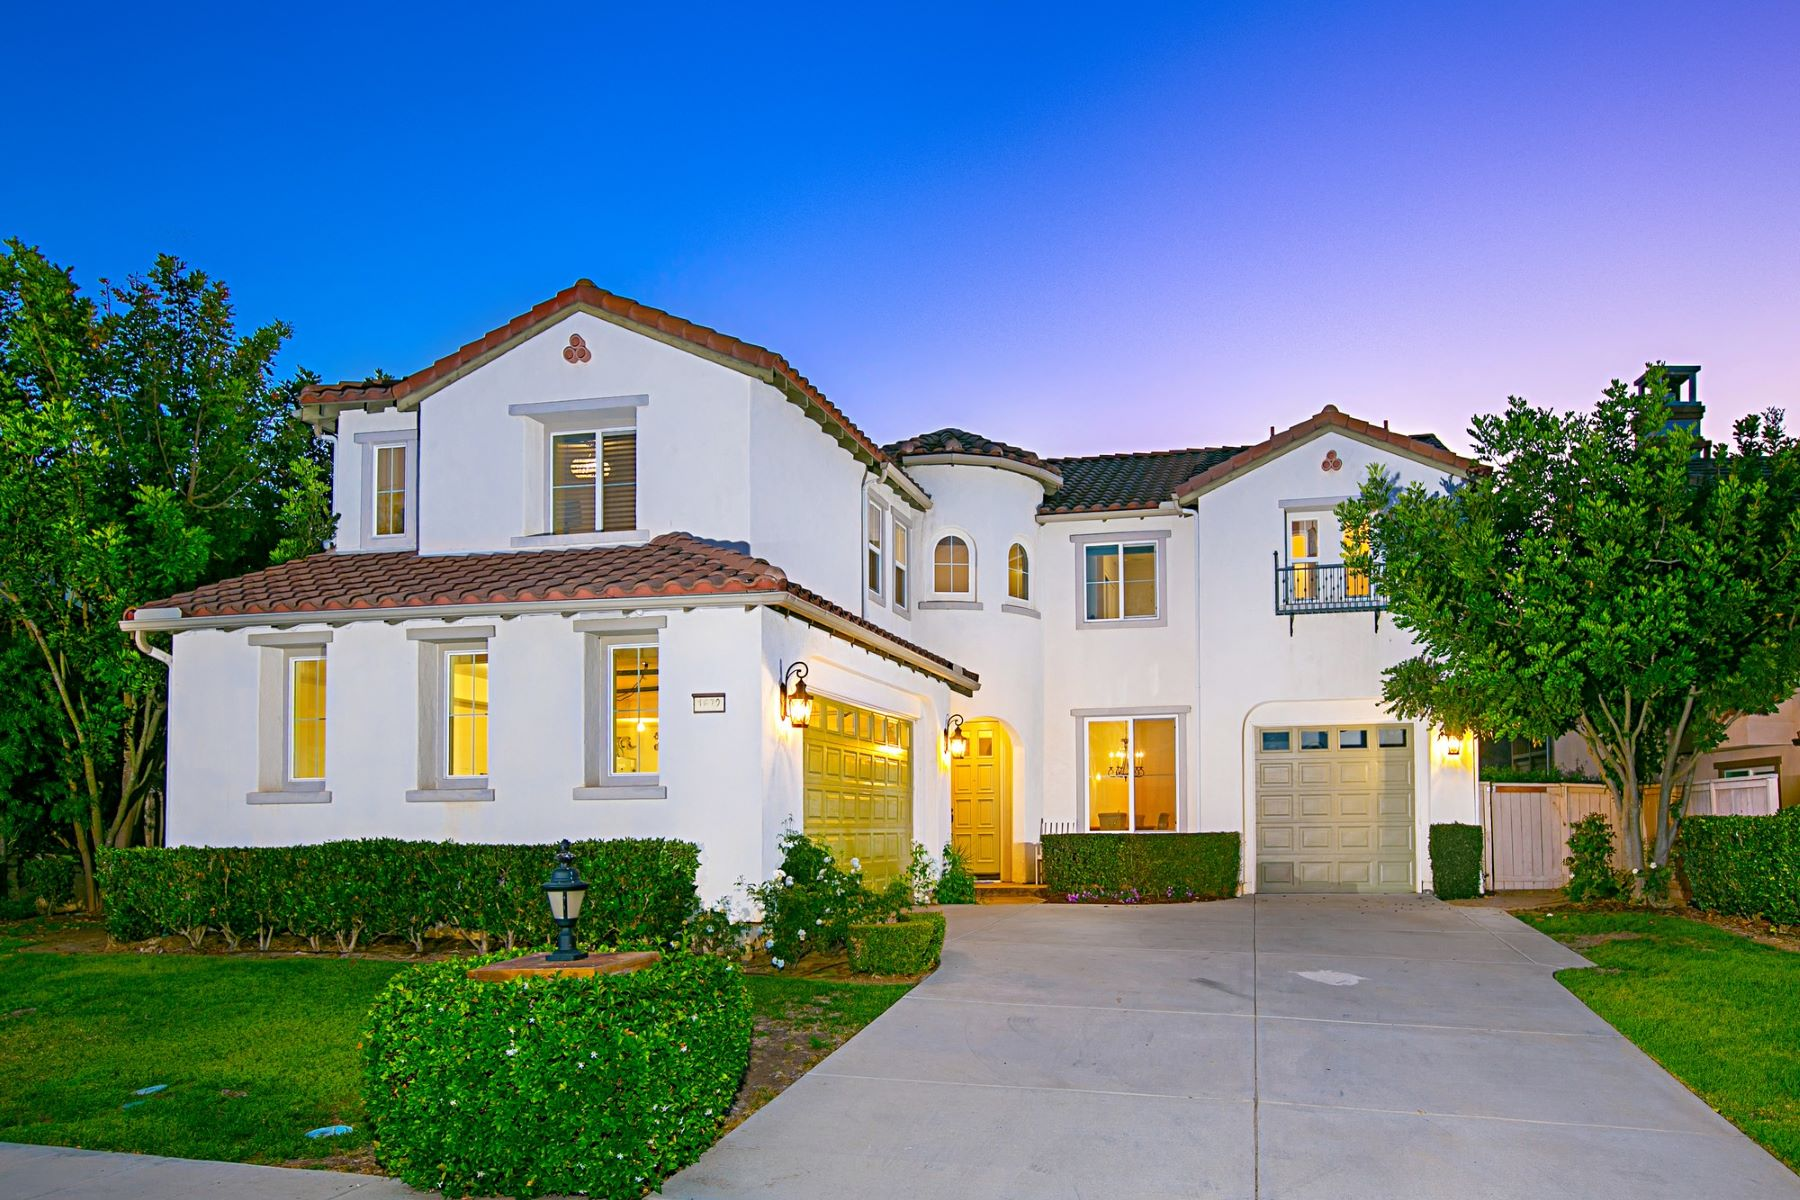 Single Family Home for Active at 1672 Trenton Way 1672 Trenton Way San Marcos, California 92078 United States